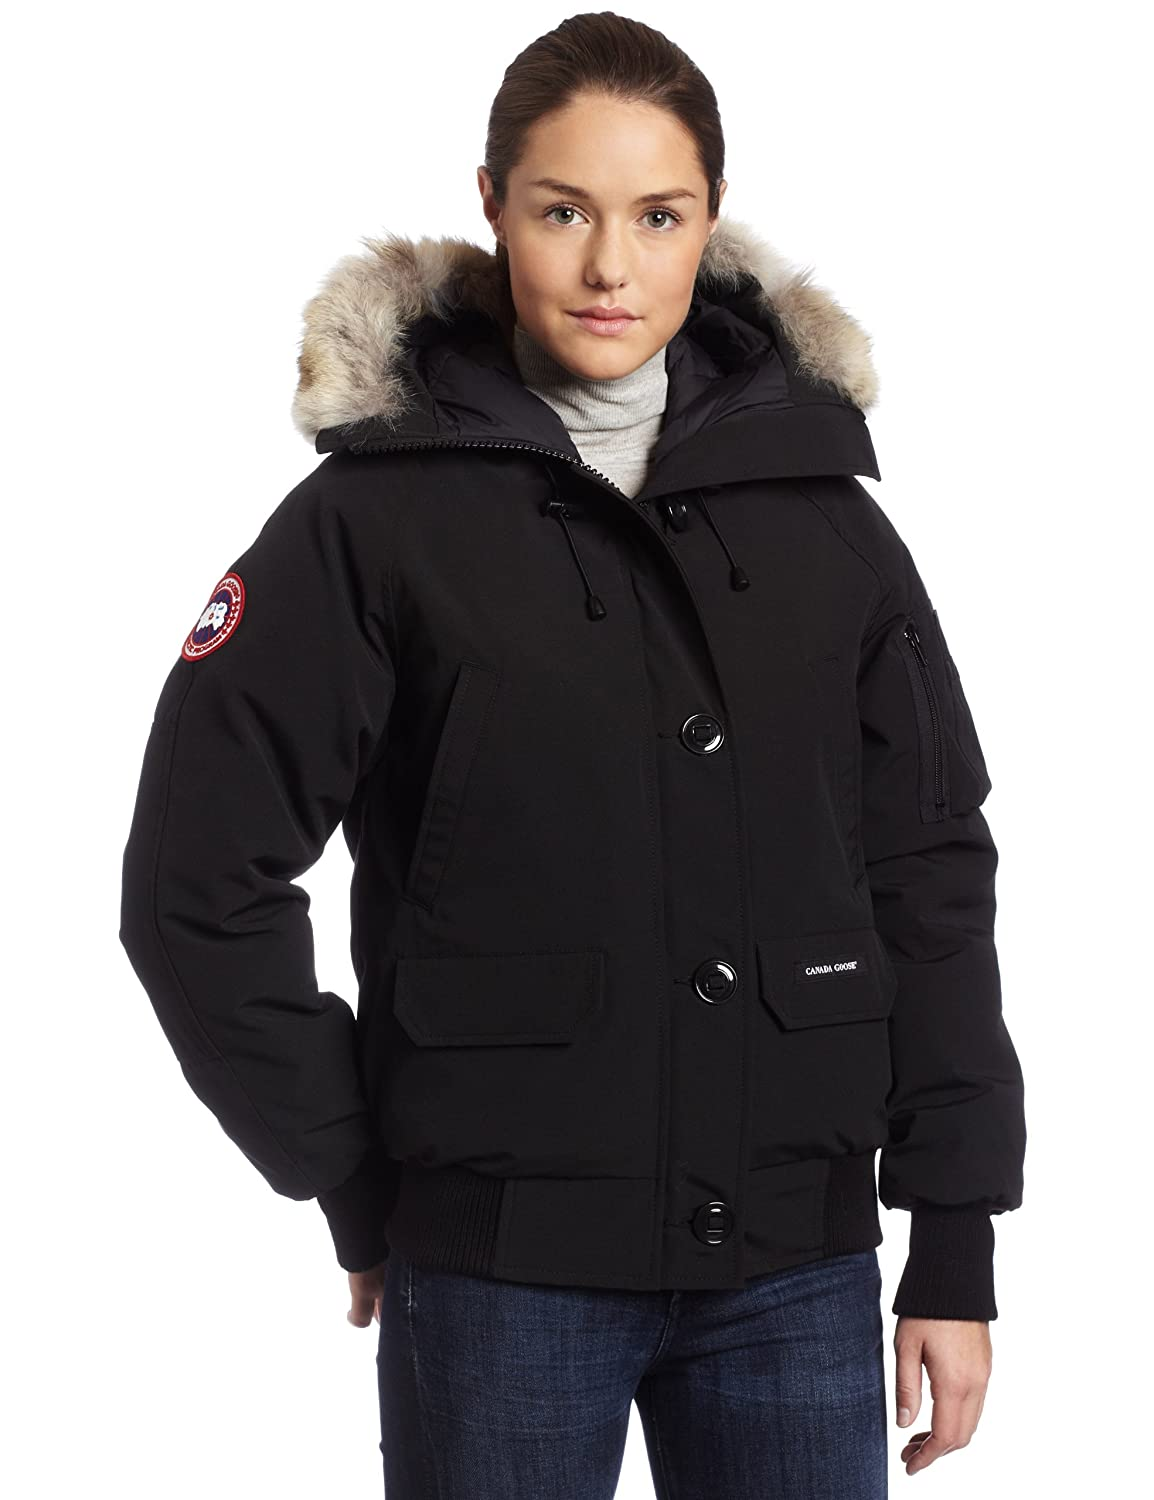 Grey Canada Goose Chilliwack Canada Goose Ladies Chilliwack